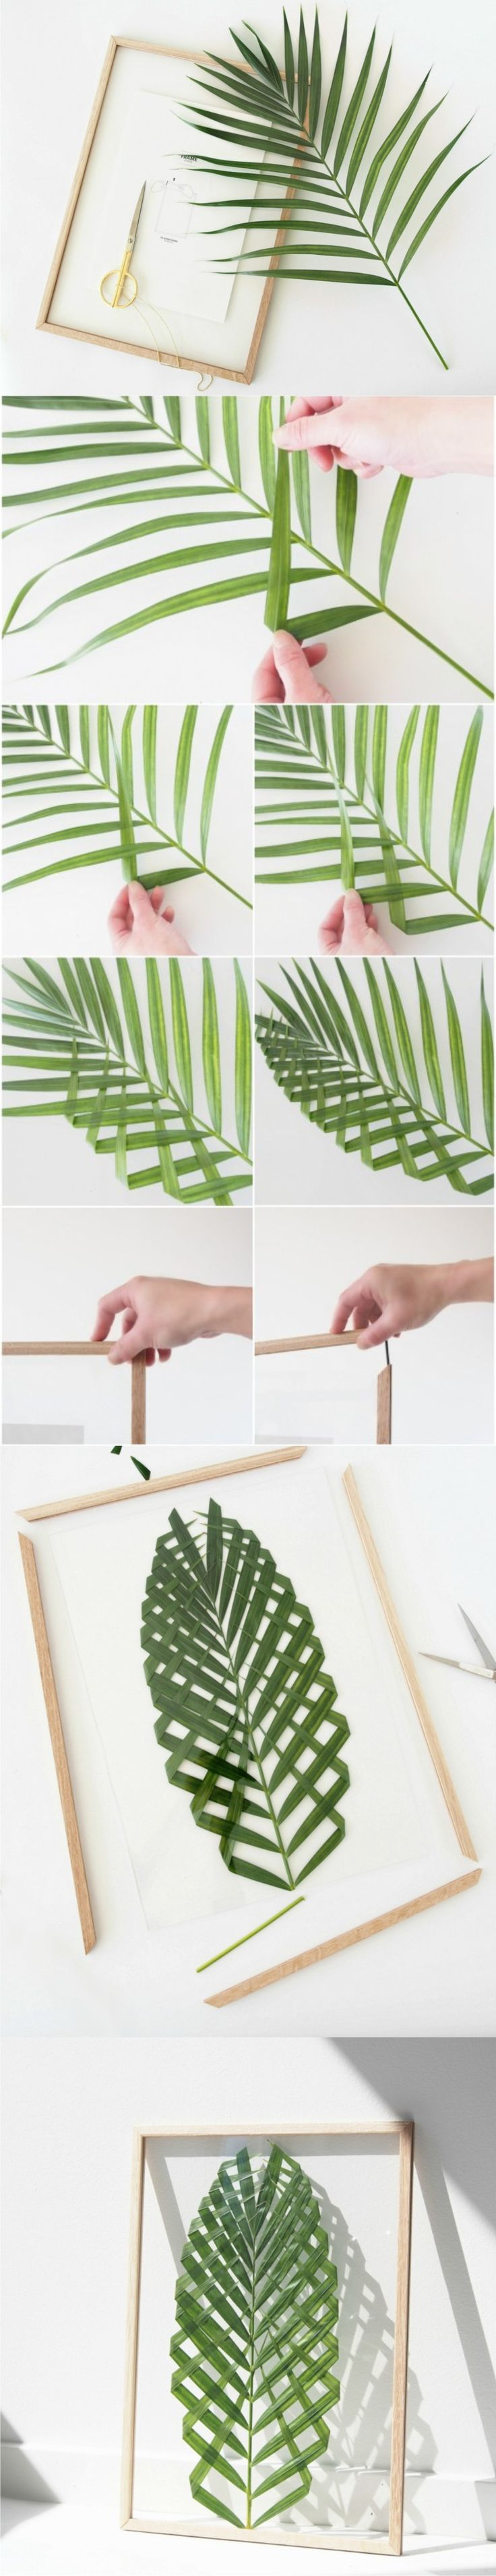 DIY Table palm leaf ingenious 2